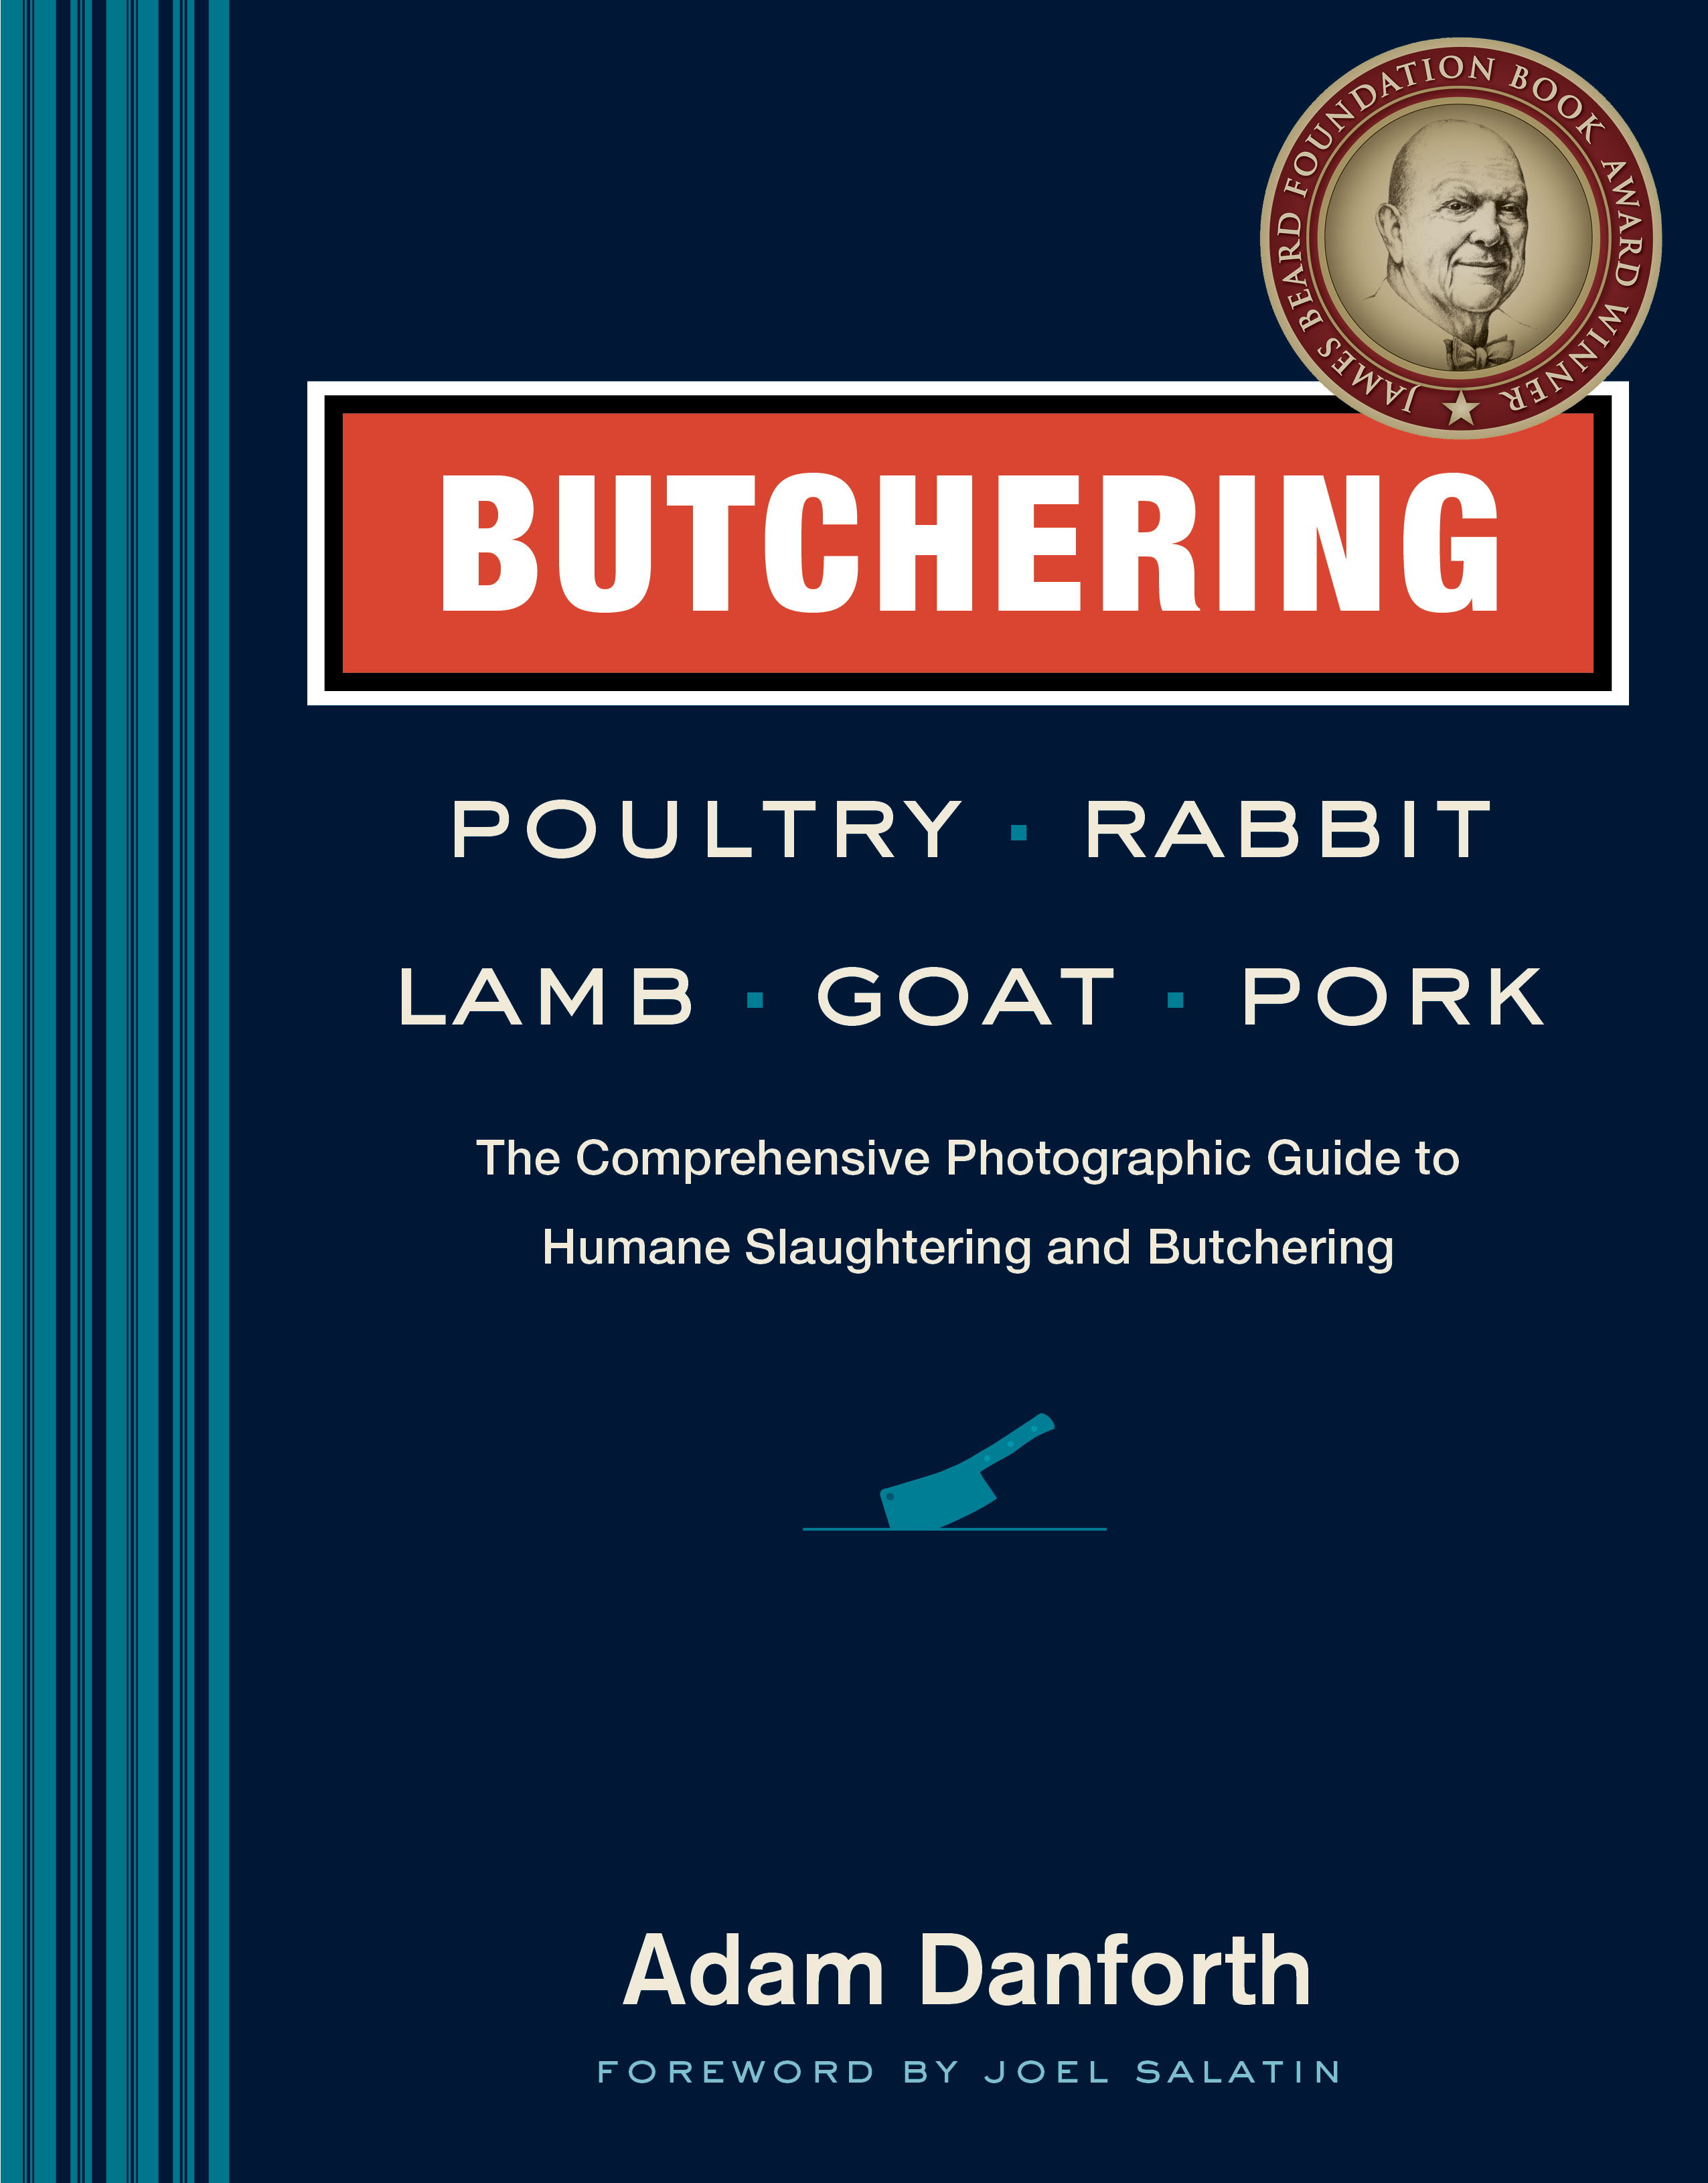 Butchering Poultry, Rabbit, Lamb, Goat, and Pork The Comprehensive Photographic Guide to Humane Slaughtering and Butchering - Adam Danforth